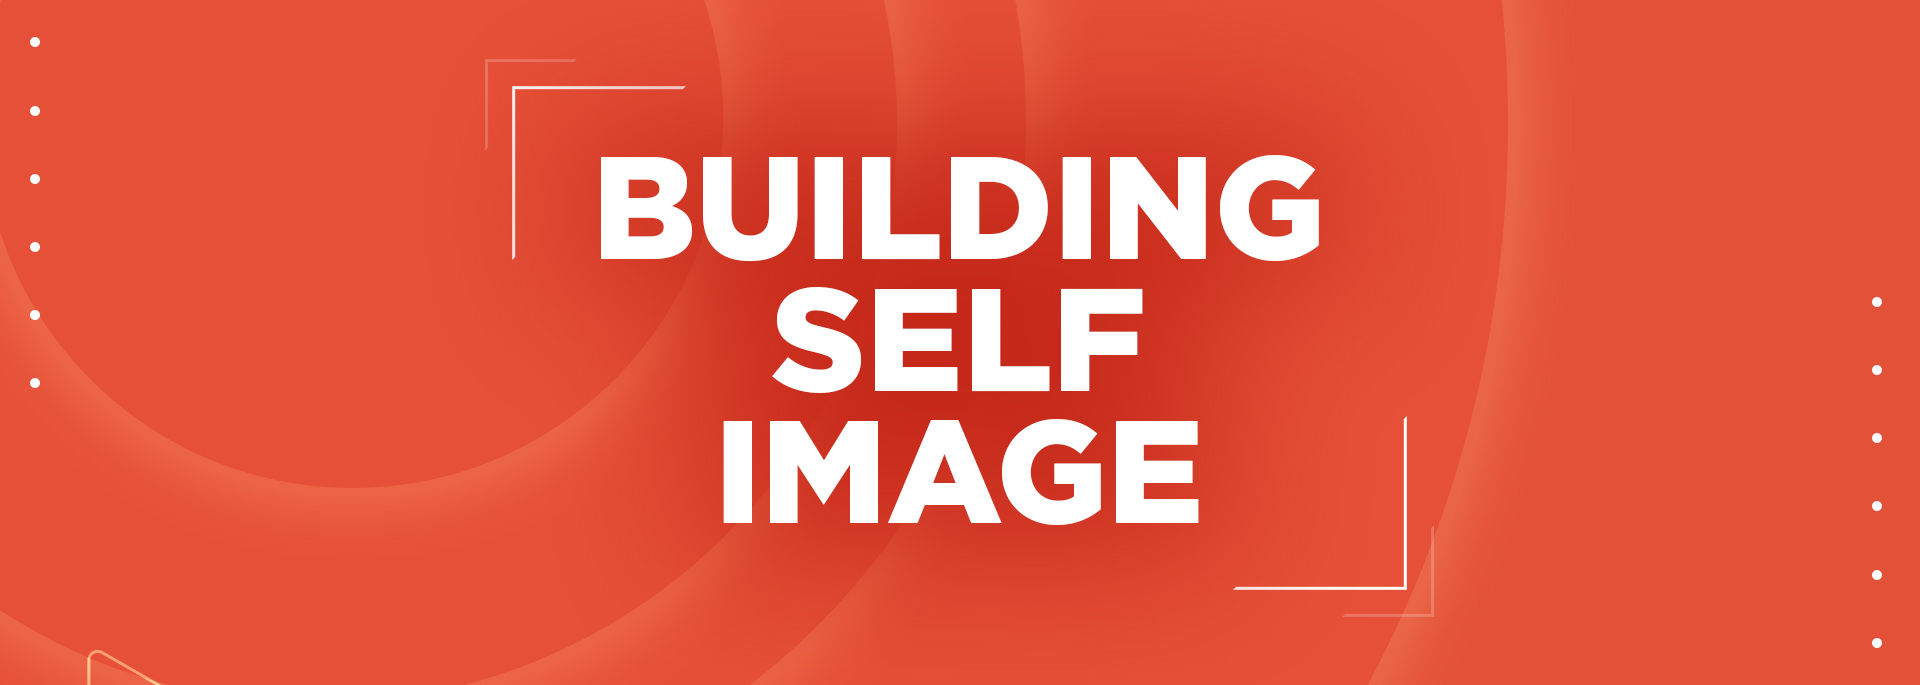 Building Self-Image channel